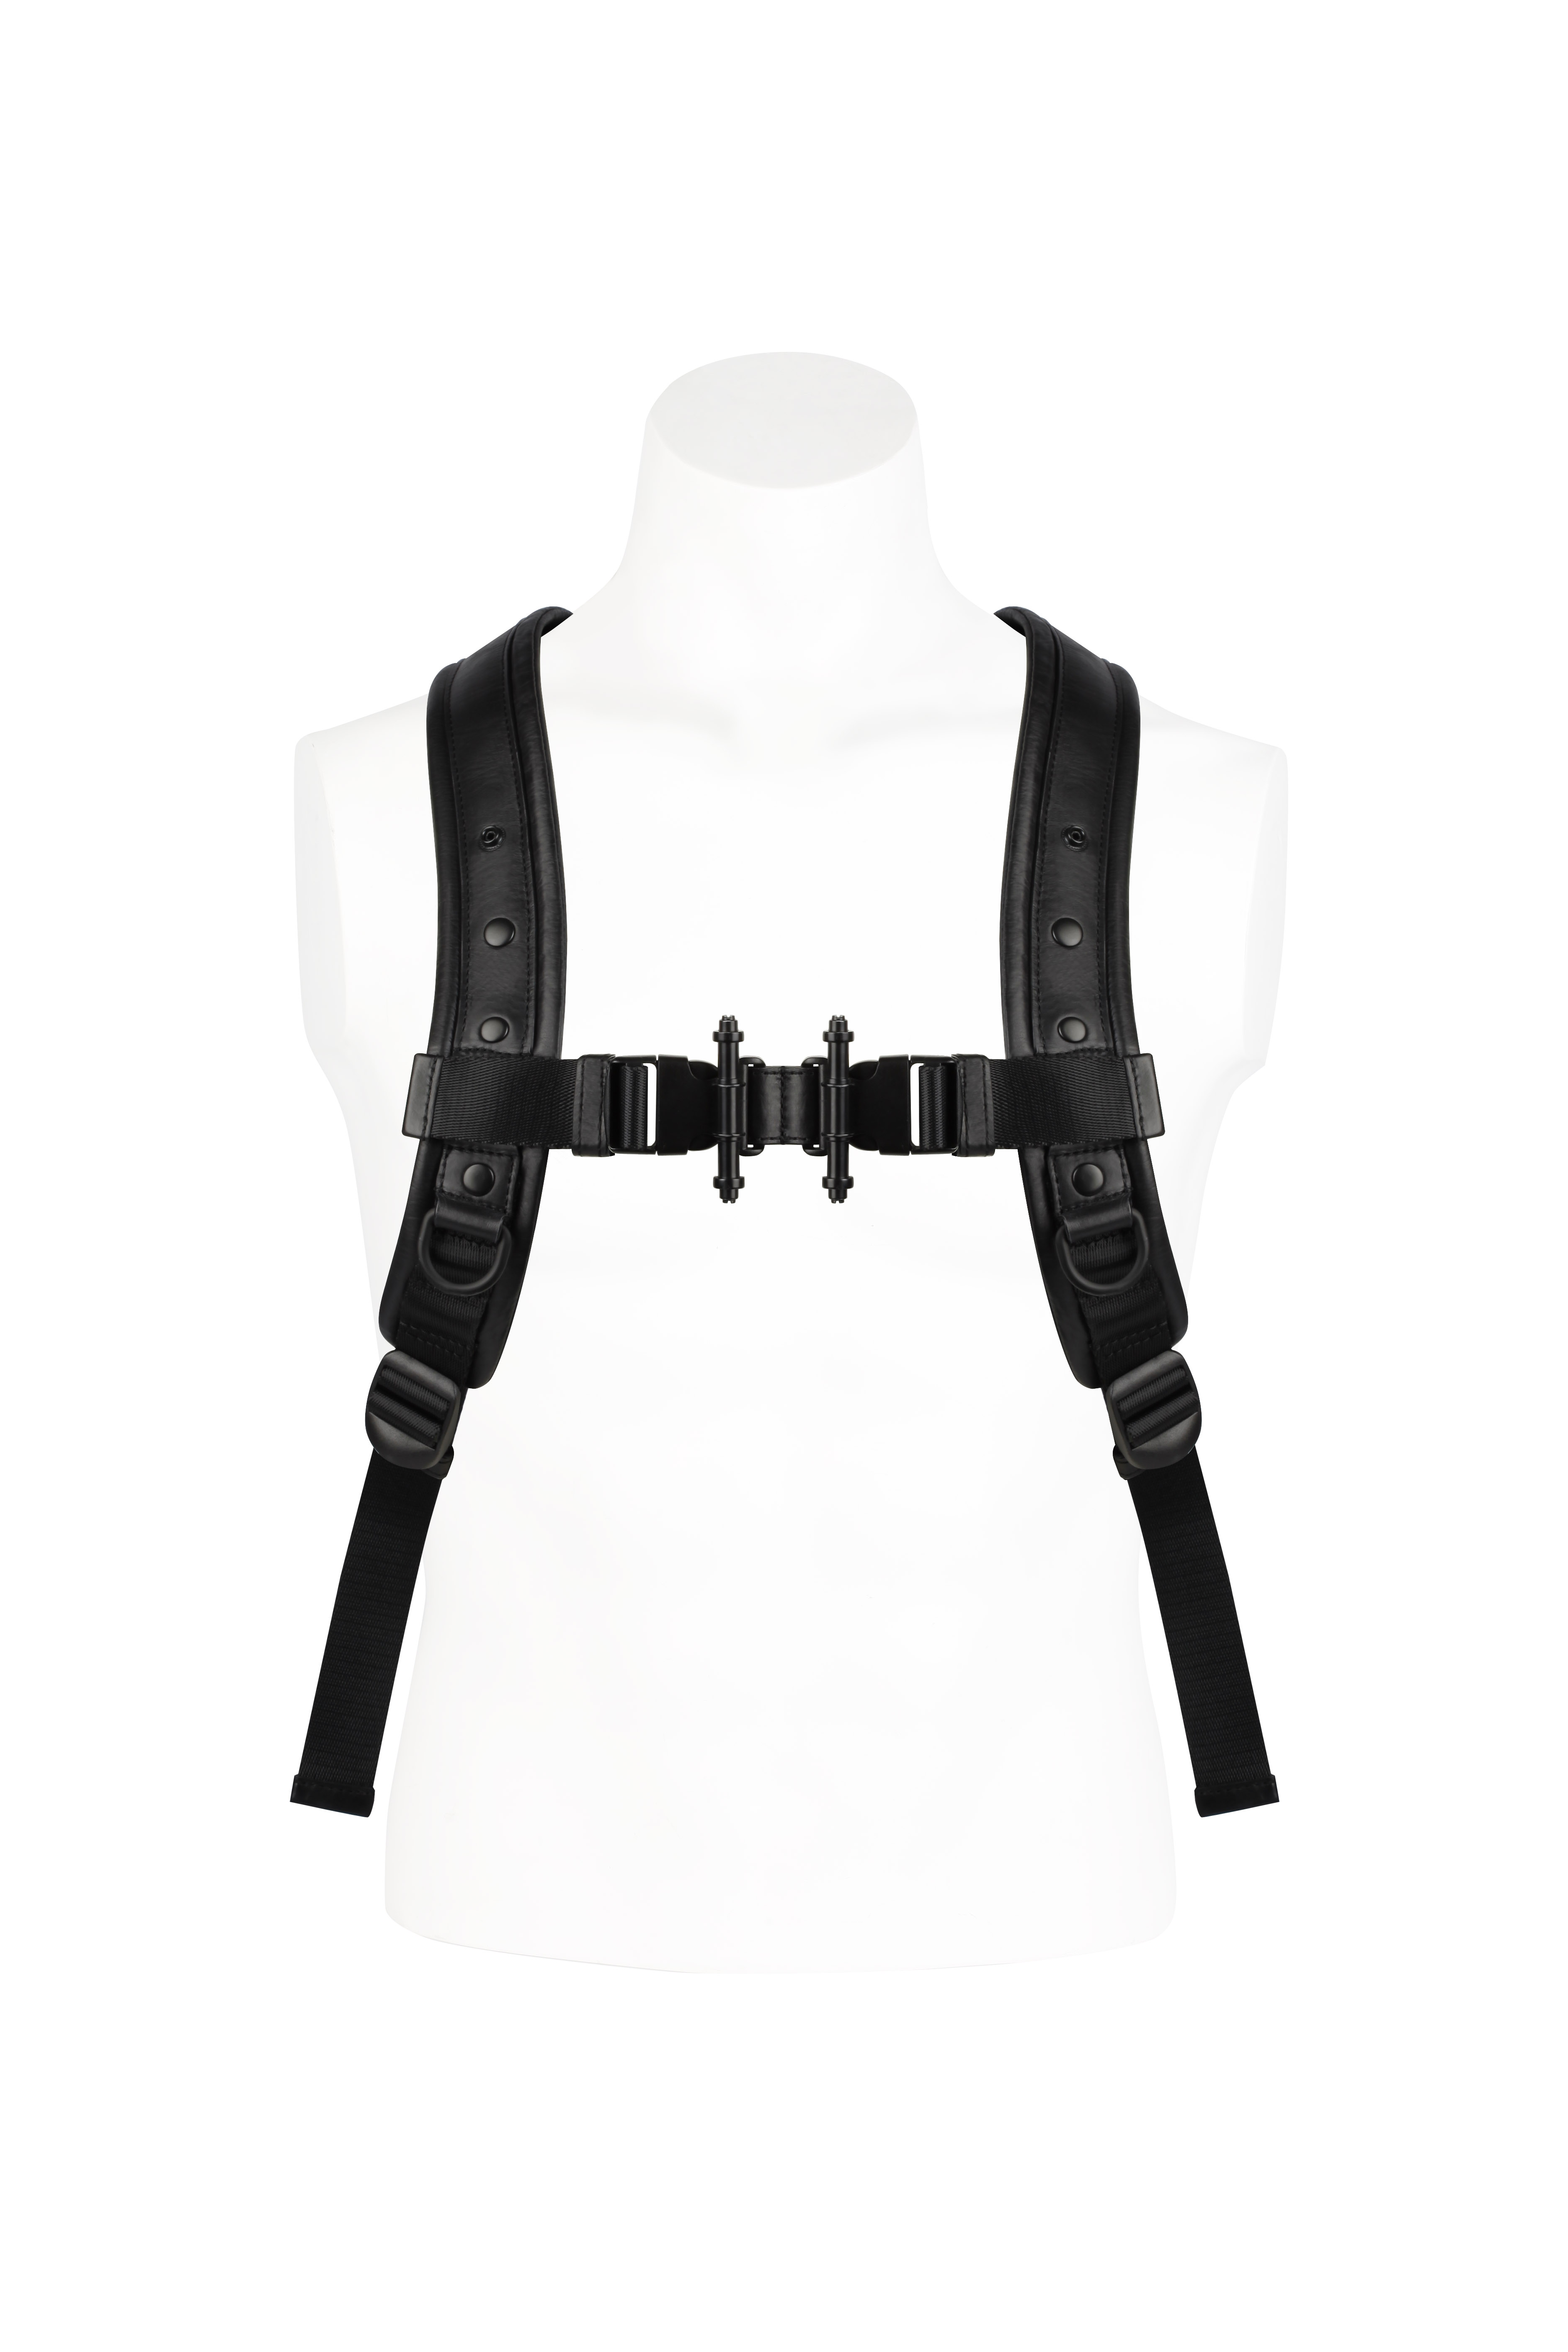 GIVENCHY SS 12 MENSWEAR ACCESSORIES - BACKPACK Obsedia